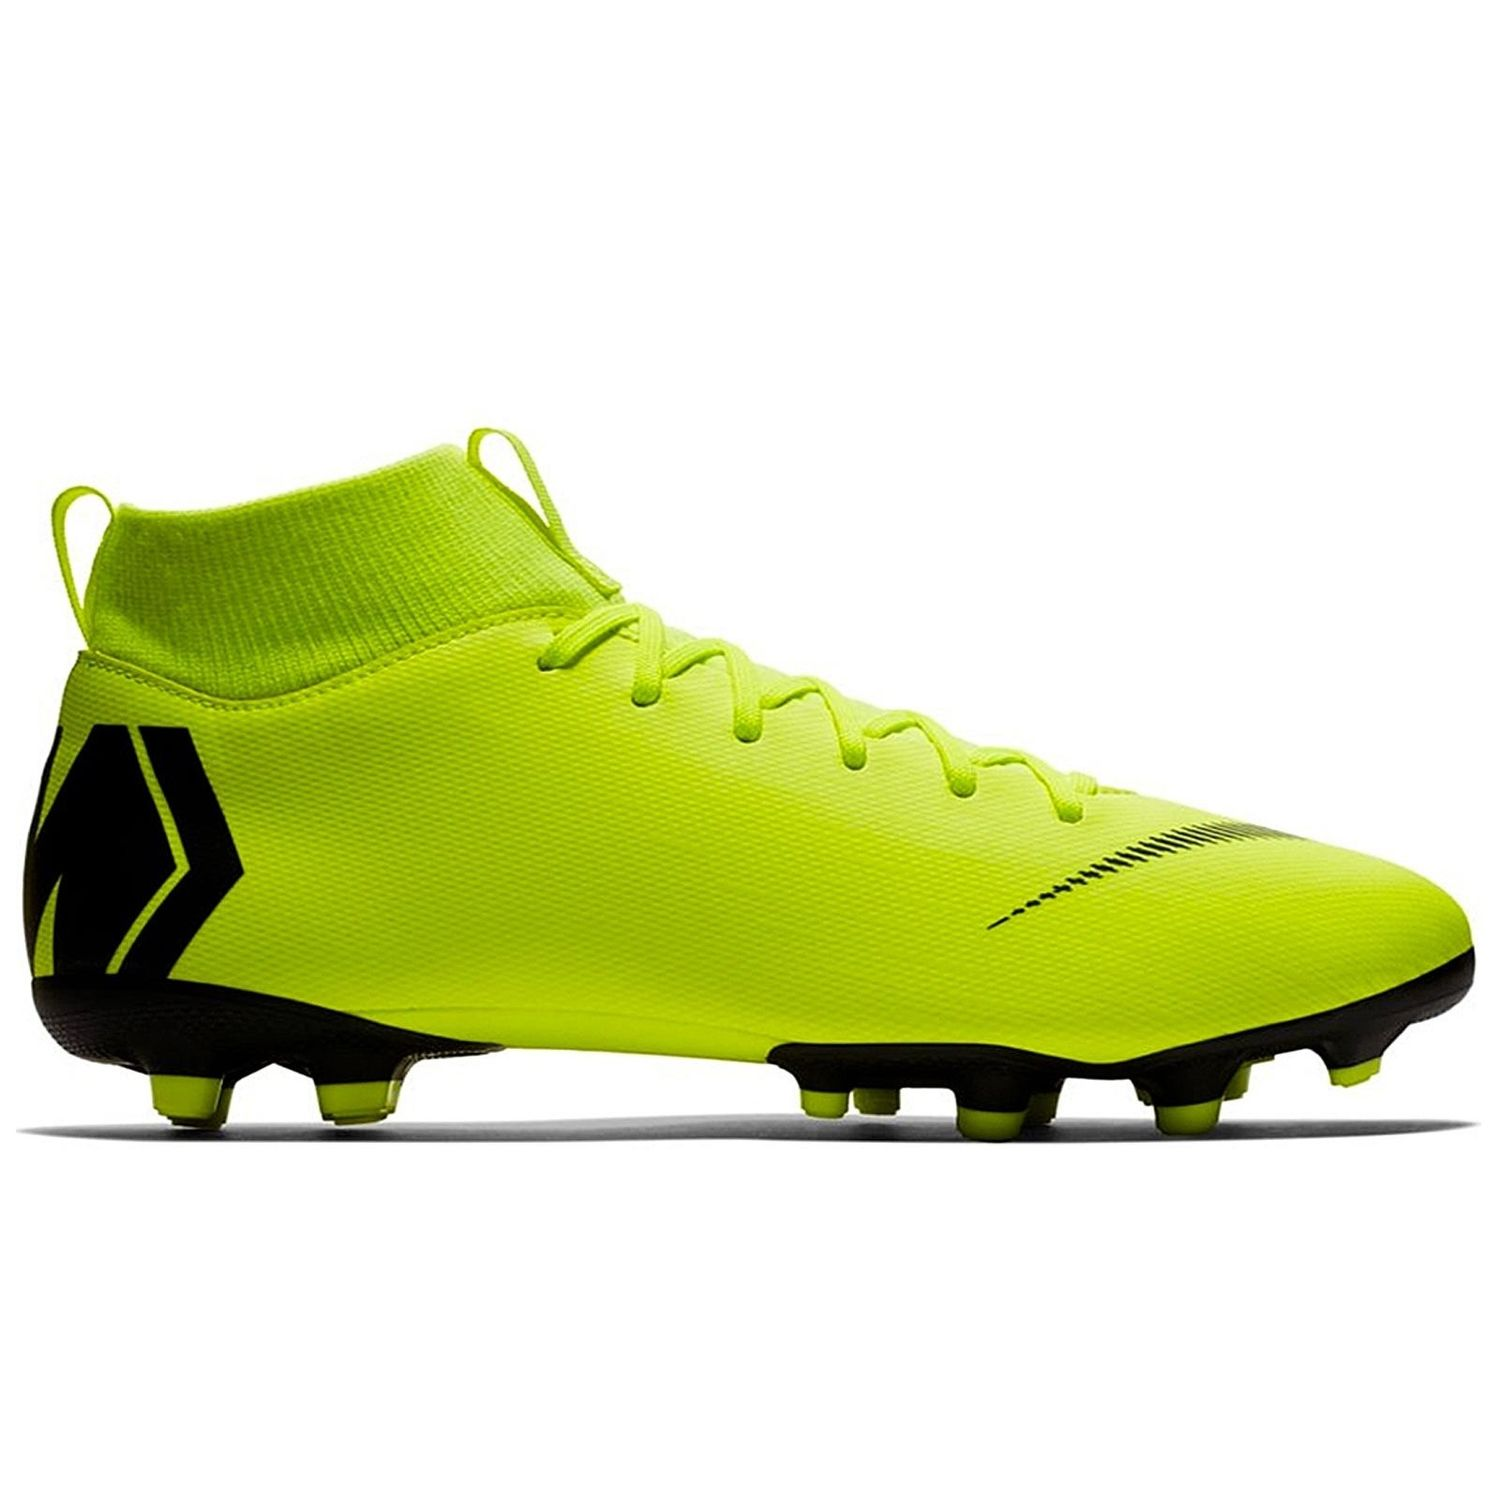 26ee6507912 BOTINES NIKE MERCURIAL SUPERFLY 6 ACADEMY MG FG DE HOMBRE - sporting